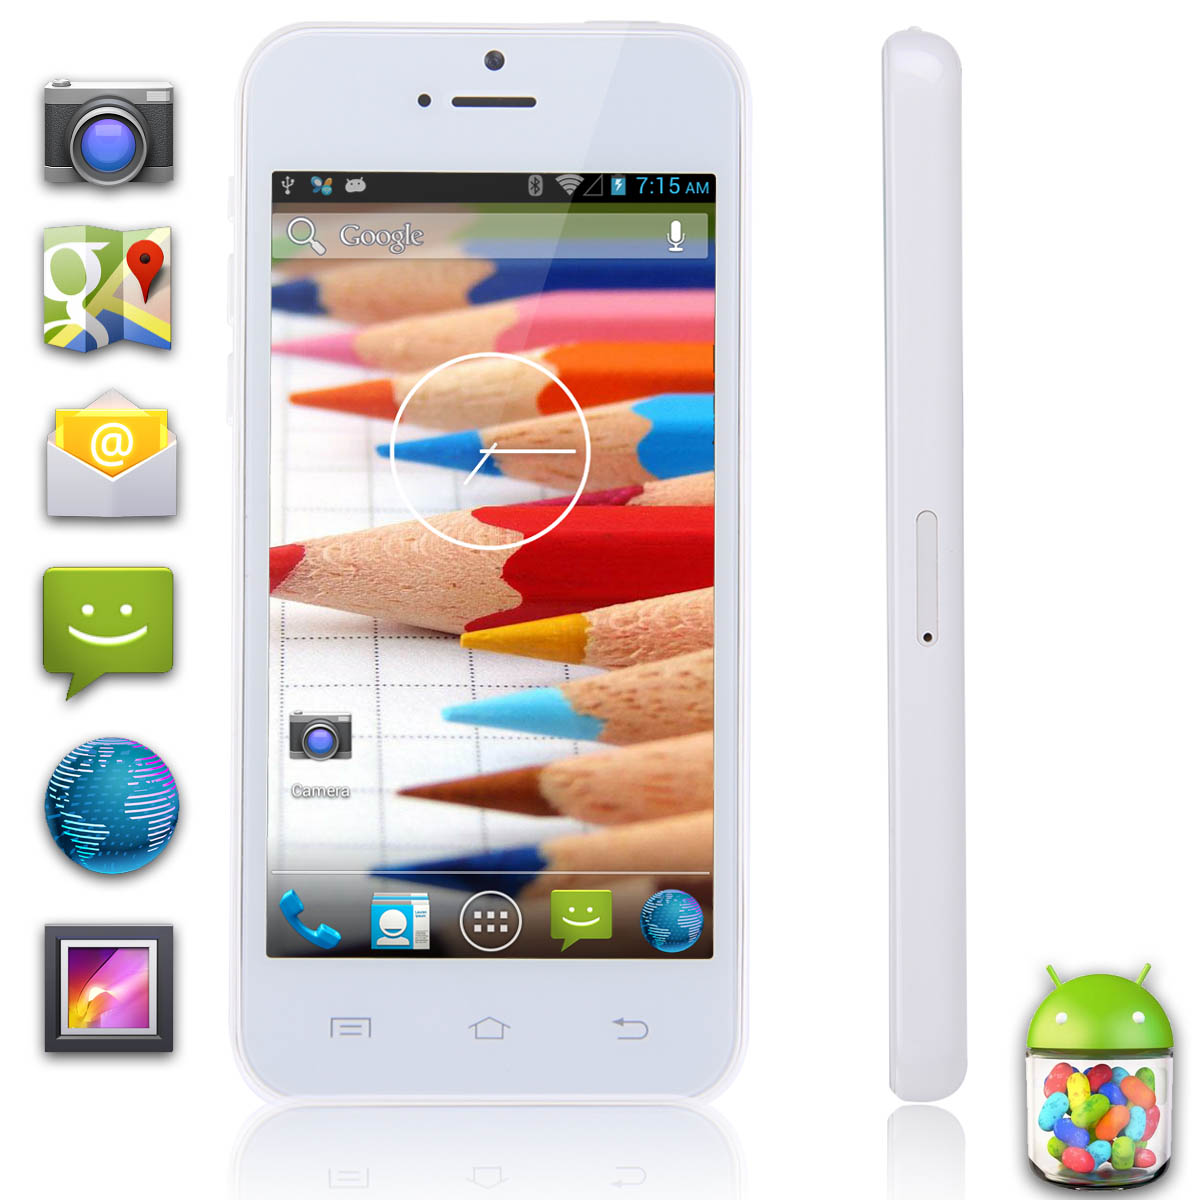 Smartphones Baratos Libres Movilesbaratoschinos Moviles Chinos Baratos Moviles